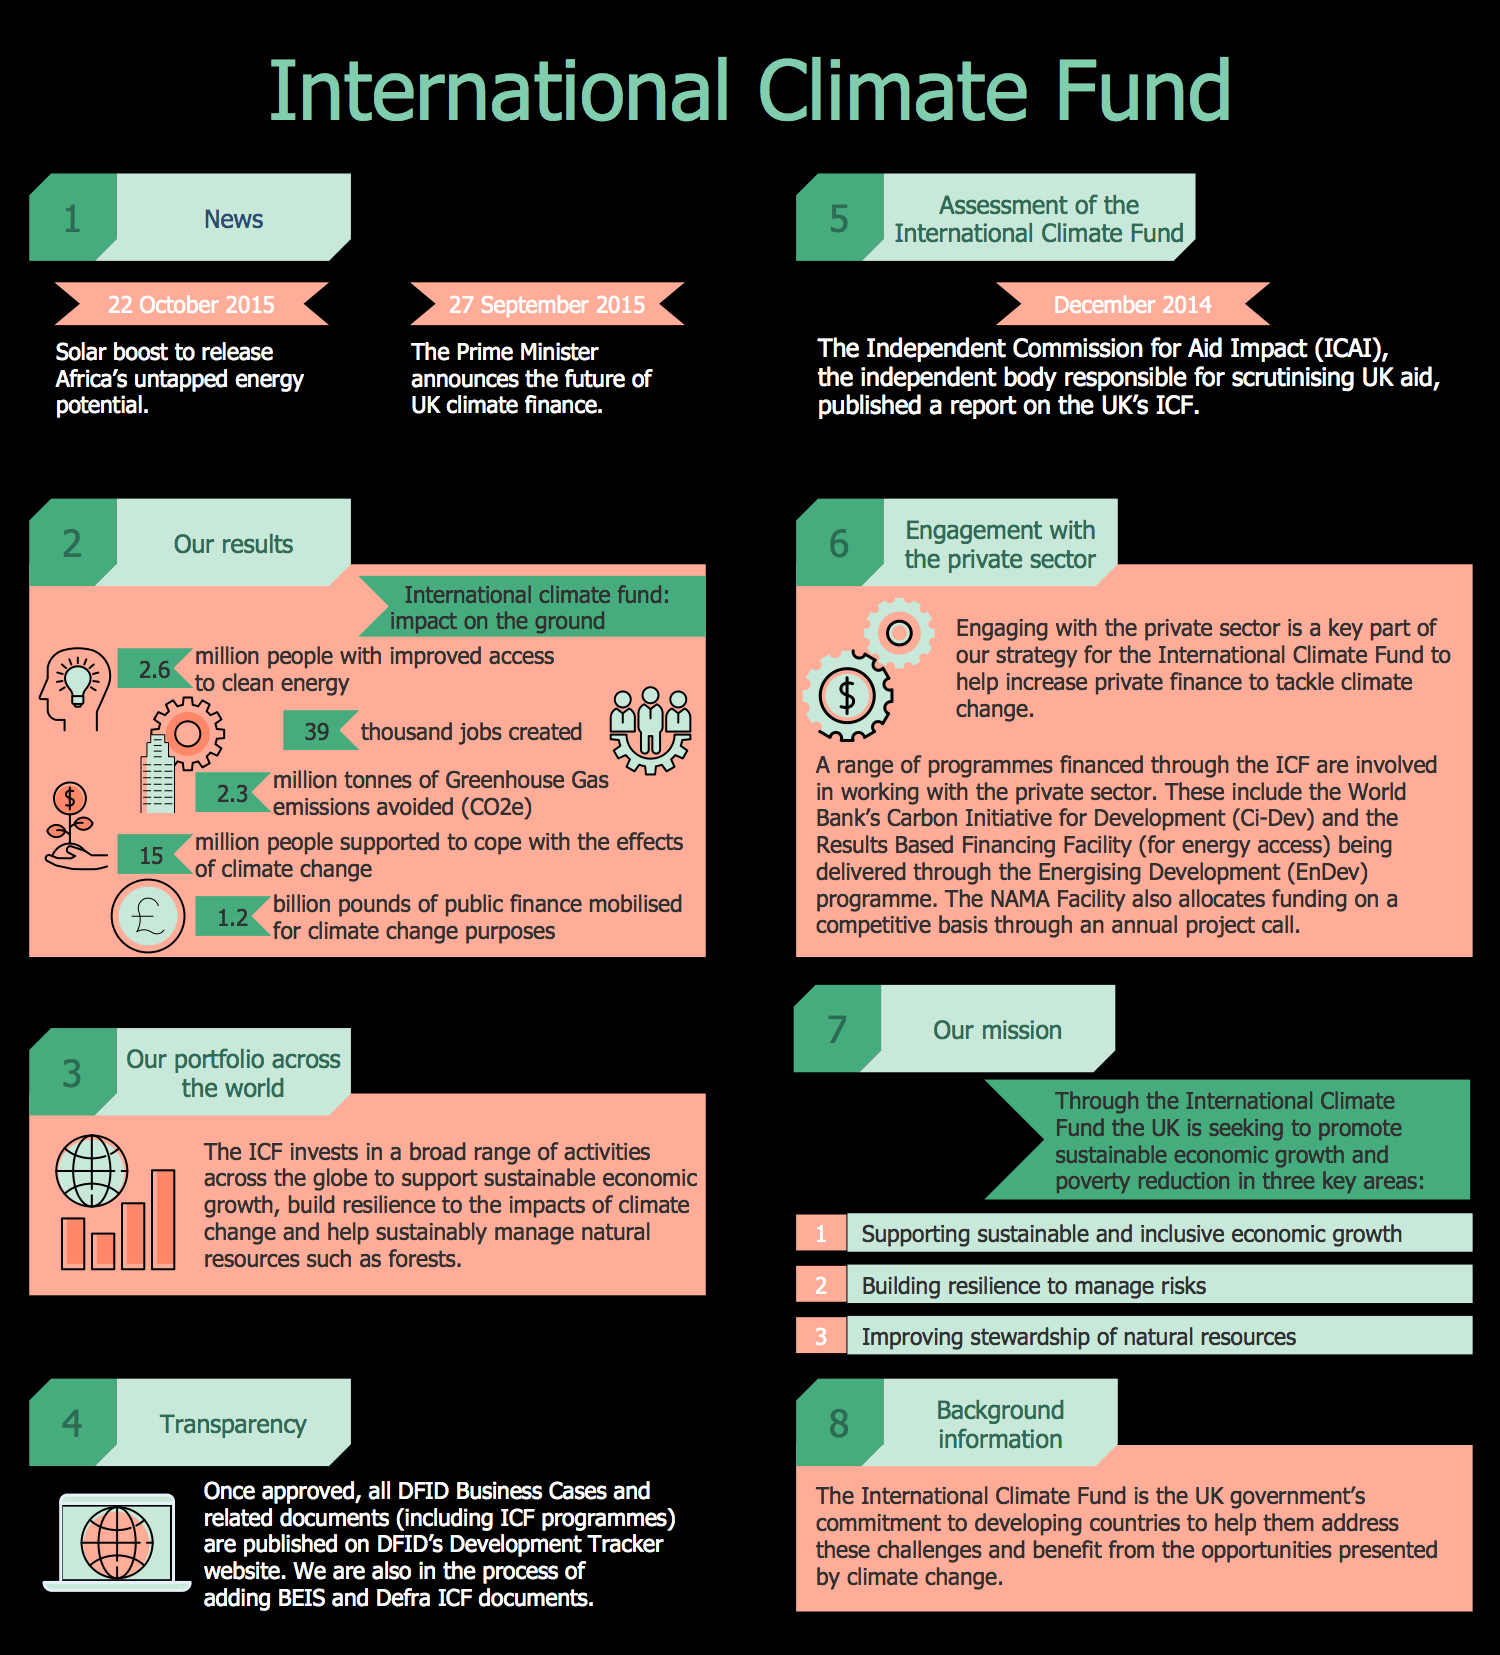 International Climate Fund